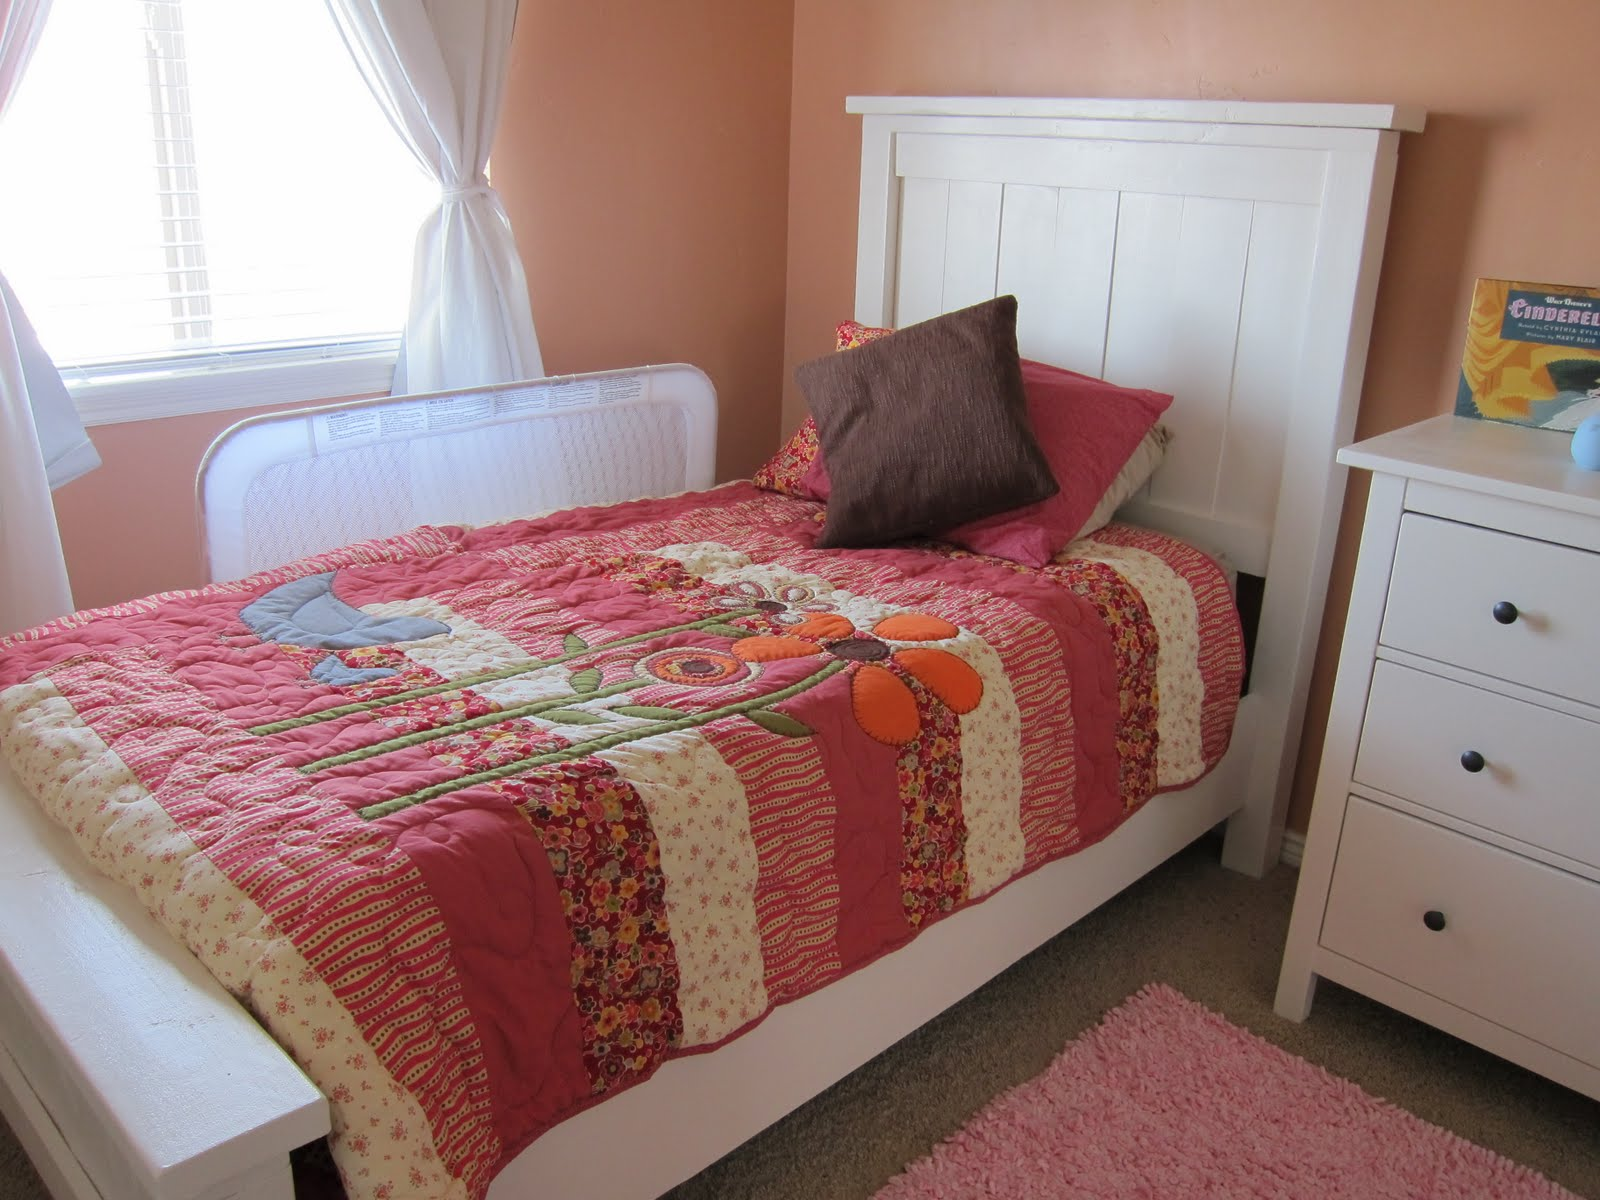 Suggested Standard Quilt Sizes for Beds. Our suggested quilt size dimensions are based in most cases on a mattress depth of 15″. No extra length is included for a pillow tuck. Quilting, if moderate to heavy, may reduce the finished size of your quilt by 1″ to 3″ or more and should be considered when planning the finished size of your quilt.